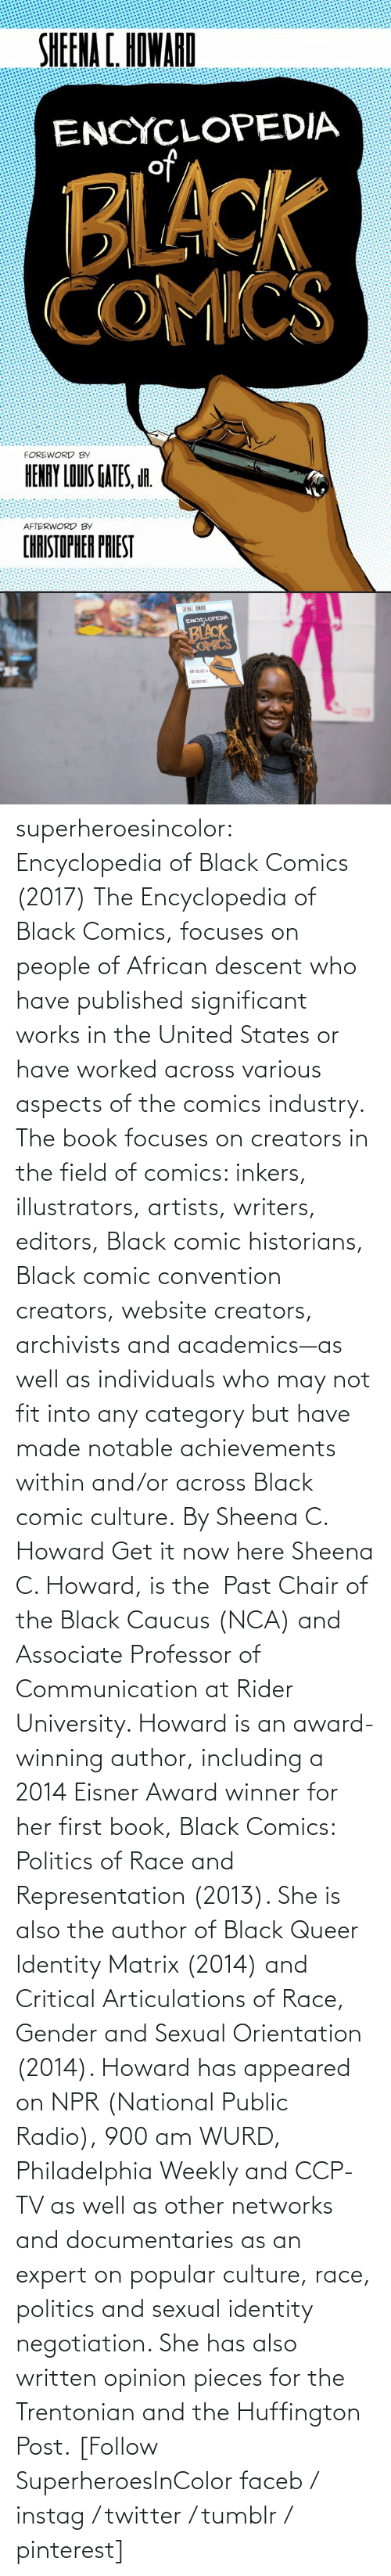 well: superheroesincolor: Encyclopedia of Black Comics (2017) The Encyclopedia of Black Comics, focuses on people of African descent who have published significant works in the United States or have worked across various aspects of the comics industry.  The book focuses on creators in the field of comics: inkers, illustrators, artists, writers, editors, Black comic historians, Black comic convention creators, website creators, archivists and academics—as well as individuals who may not fit into any category but have made notable achievements within and/or across Black comic culture. By Sheena C. Howard Get it now here  Sheena C. Howard, is the  Past Chair of the Black Caucus (NCA) and Associate Professor of Communication at Rider University. Howard is an award-winning author, including a 2014 Eisner Award winner for her first book, Black Comics: Politics of Race and Representation (2013). She is also the author of Black Queer Identity Matrix (2014) and Critical Articulations of Race, Gender and Sexual Orientation (2014). Howard has appeared on NPR (National Public Radio), 900 am WURD, Philadelphia Weekly and CCP-TV as well as other networks and documentaries as an expert on popular culture, race, politics and sexual identity negotiation. She has also written opinion pieces for the Trentonian and the Huffington Post.   [Follow SuperheroesInColor faceb / instag / twitter / tumblr / pinterest]